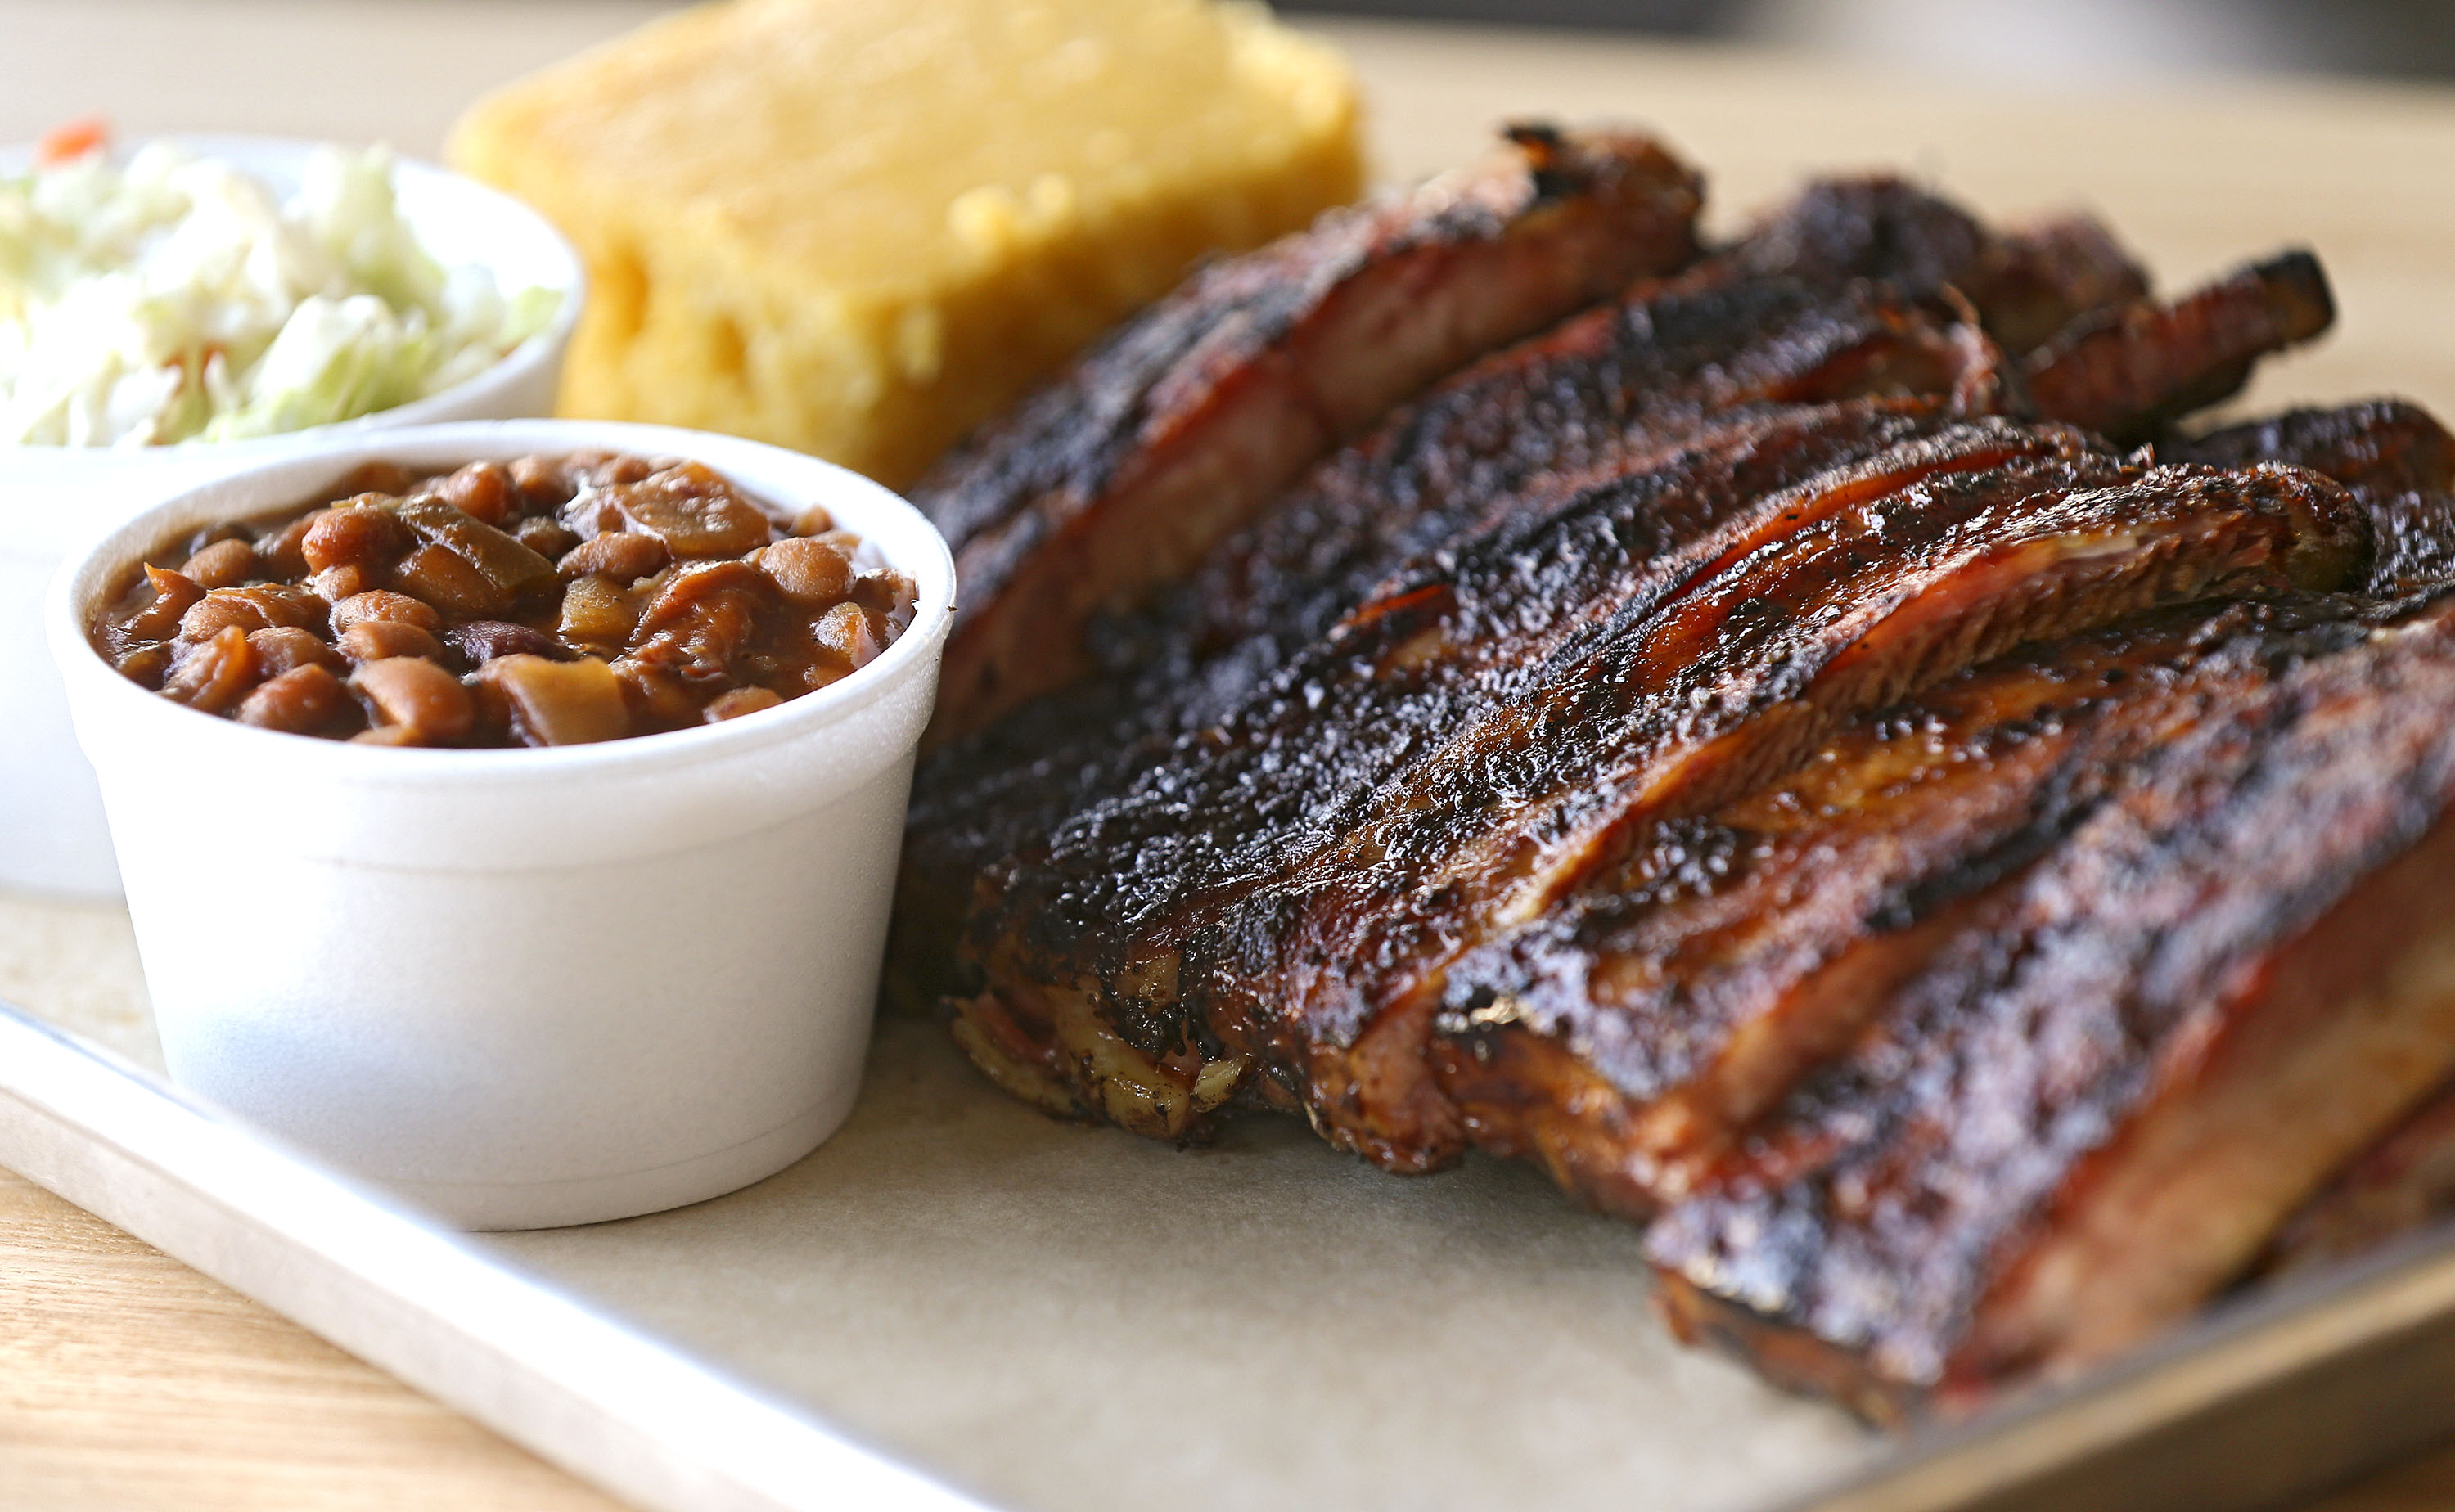 The Full Slab of Ribs meal with coleslaw and baked beans sides and a slice of honey butter corn bread at Jimmy Jack's Rib Shack in Iowa City on Thursday, Oct. 13, 2016. The ribs are St. Louis style pork ribs. (Stephen Mally/The Gazette)